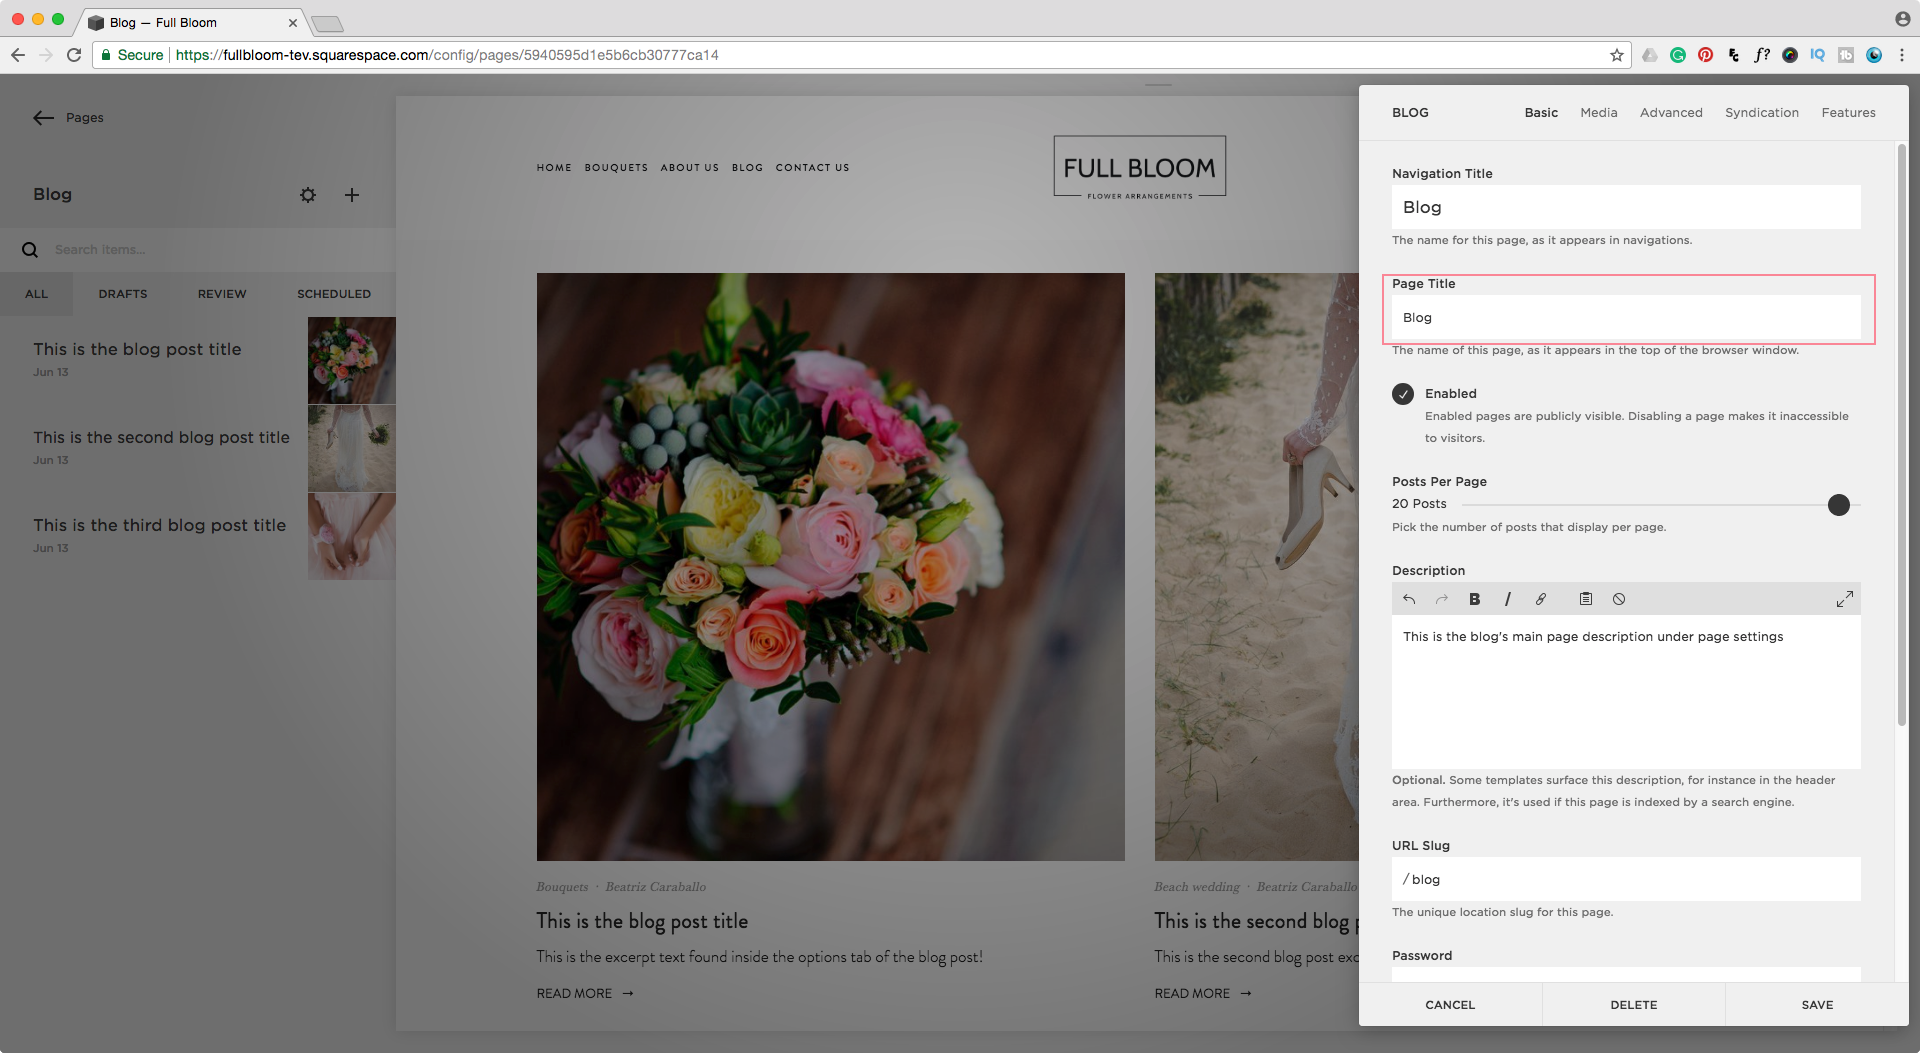 Changing the page title of a blog page in Squarespace